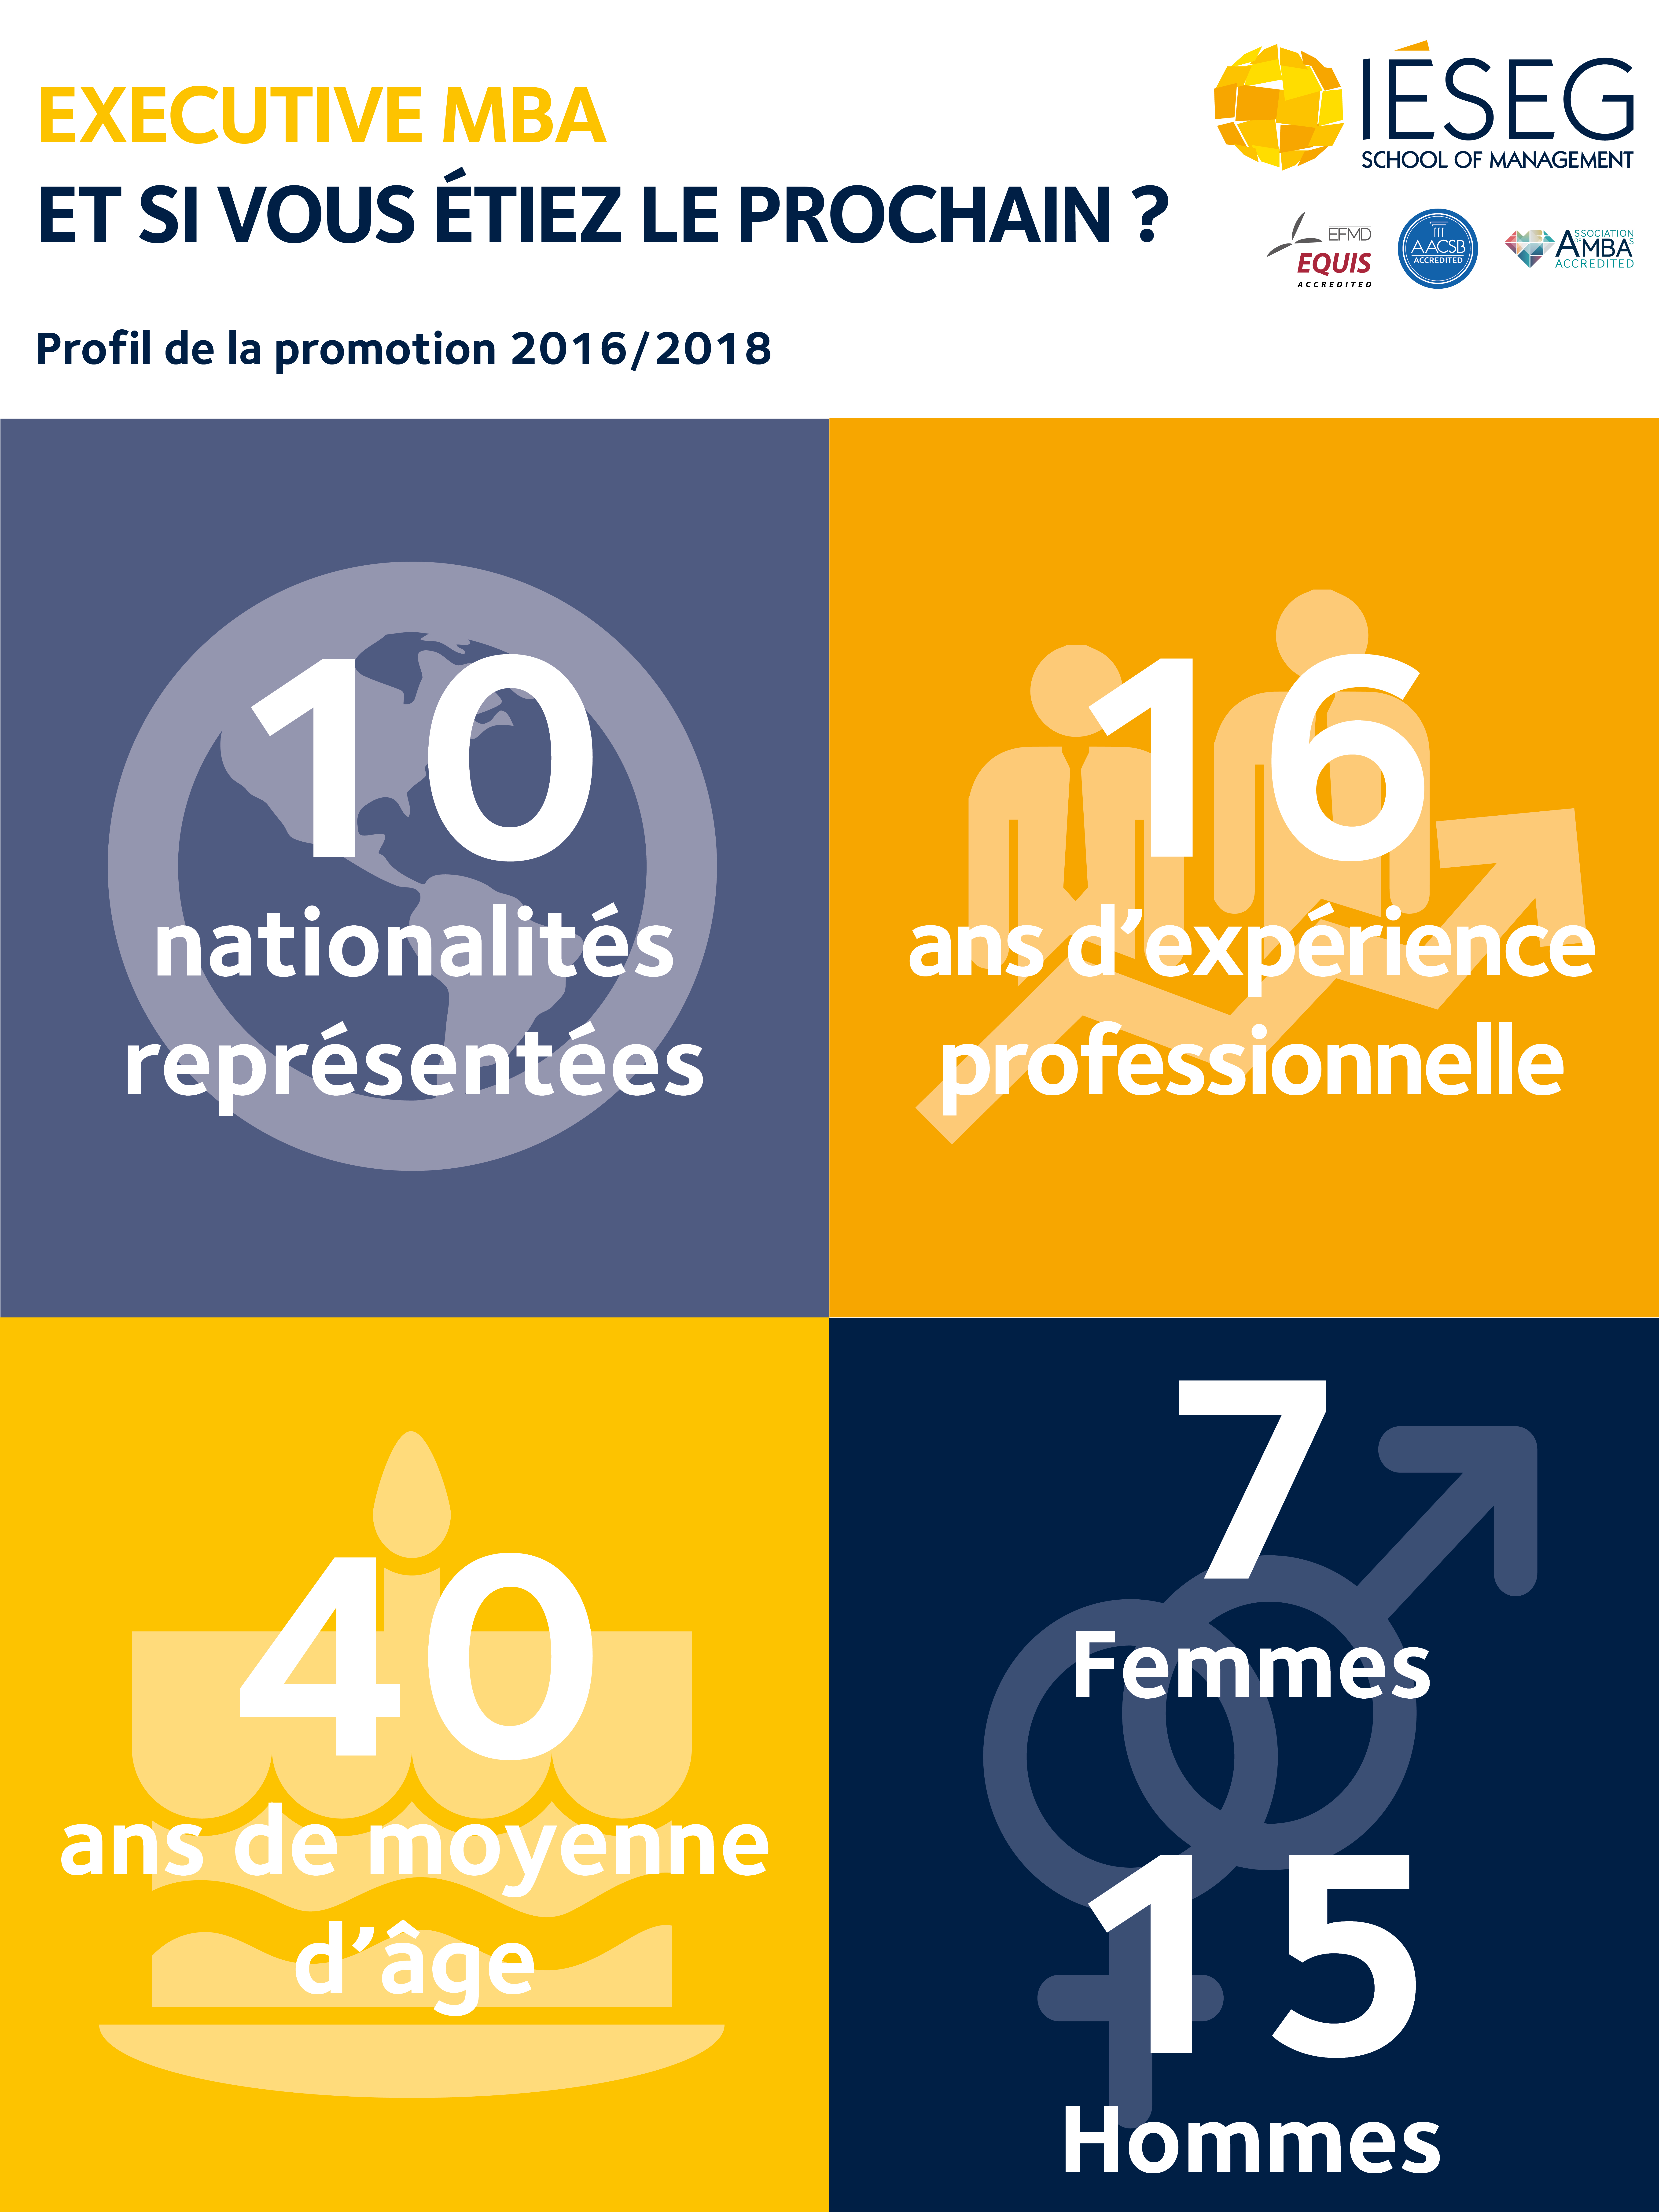 emba-infographie-promoi